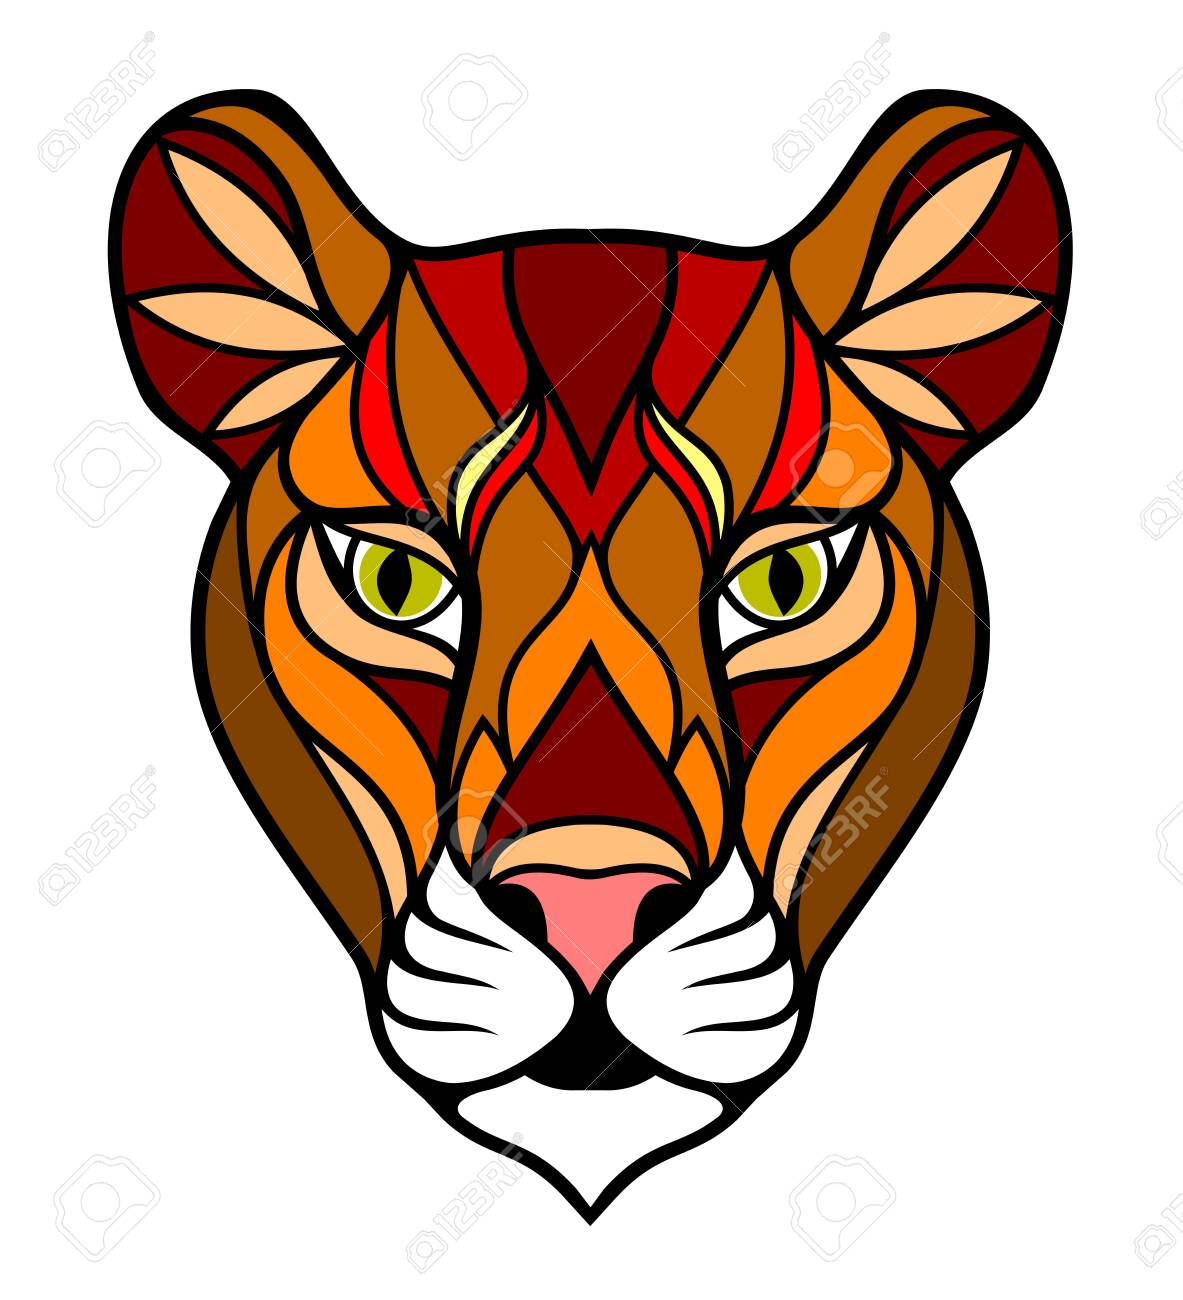 Image of a lioness in an old school style - 135697482